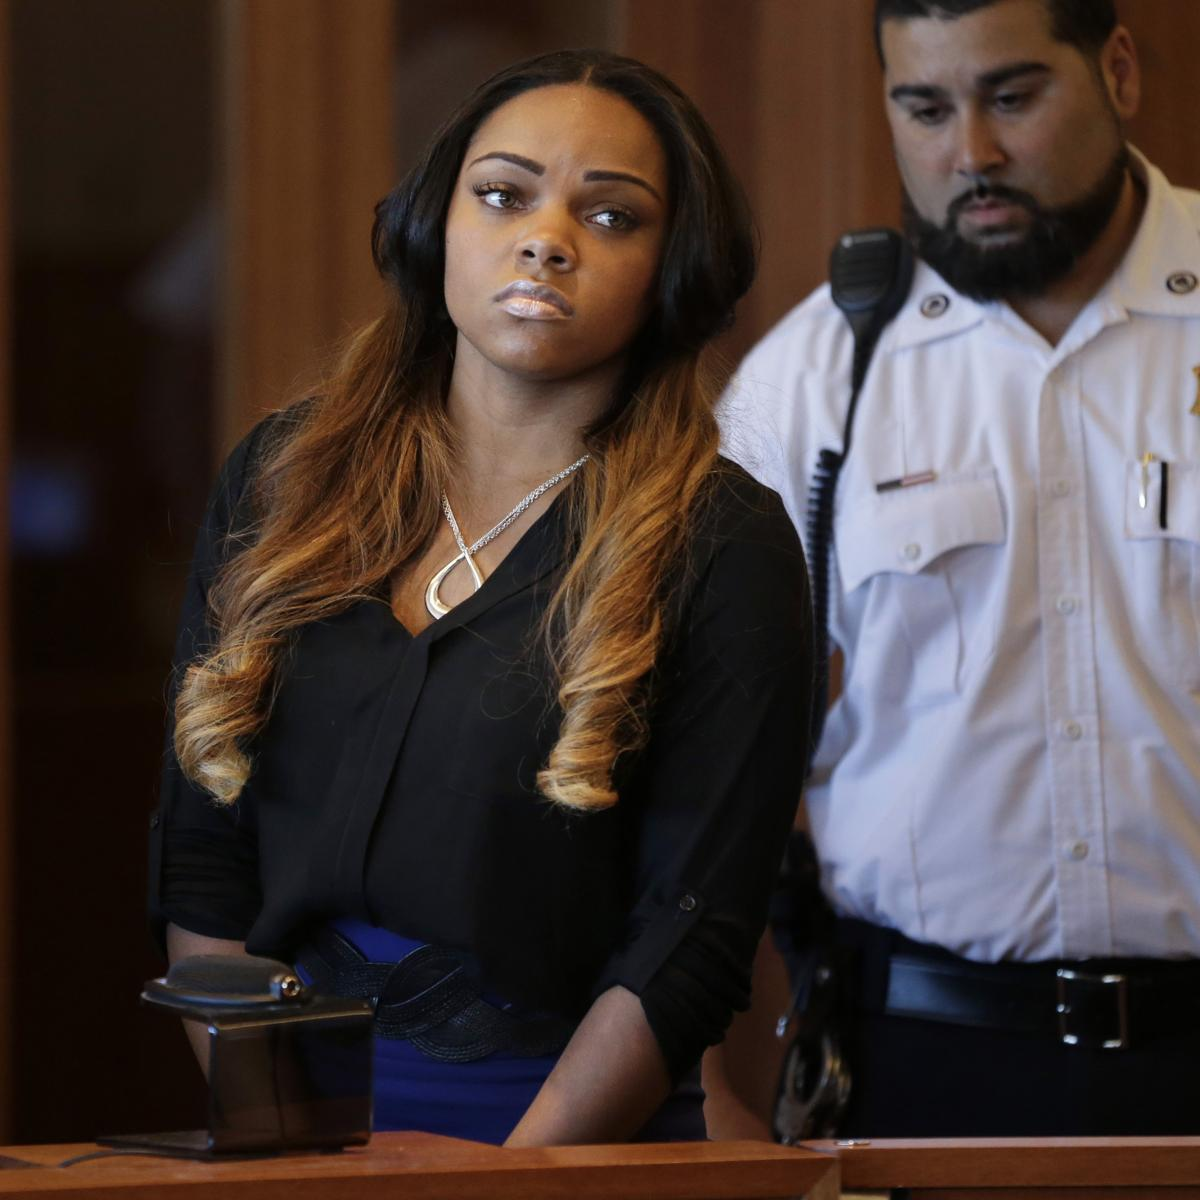 Aaron Hernandez Trial: Top Takeaways from Fiancee Shayanna Jenkins'  Testimony | Bleacher Report | Latest News, Videos and Highlights